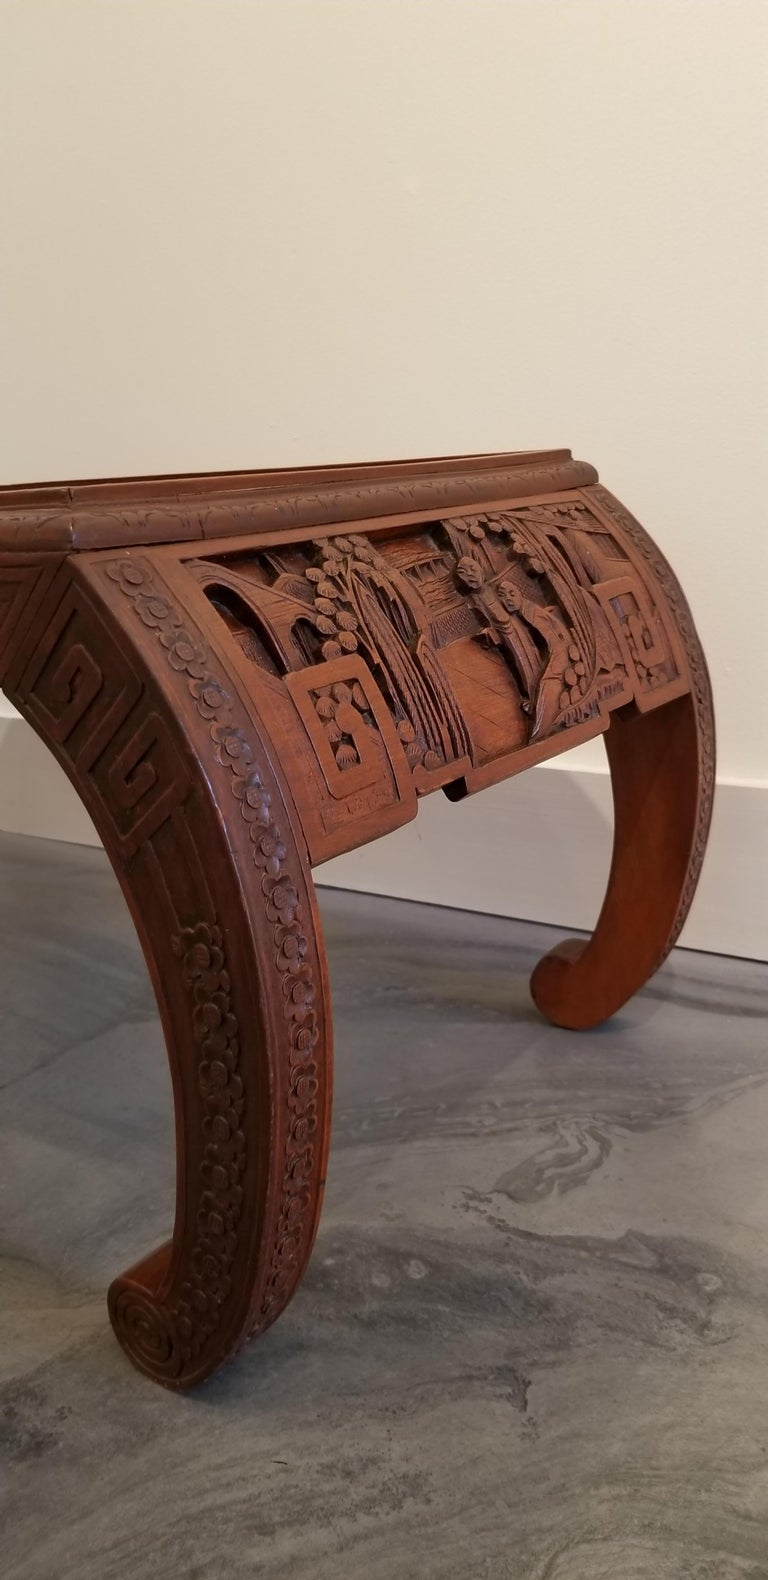 Carved Chinese Coffee Table For Sale at 1stdibs